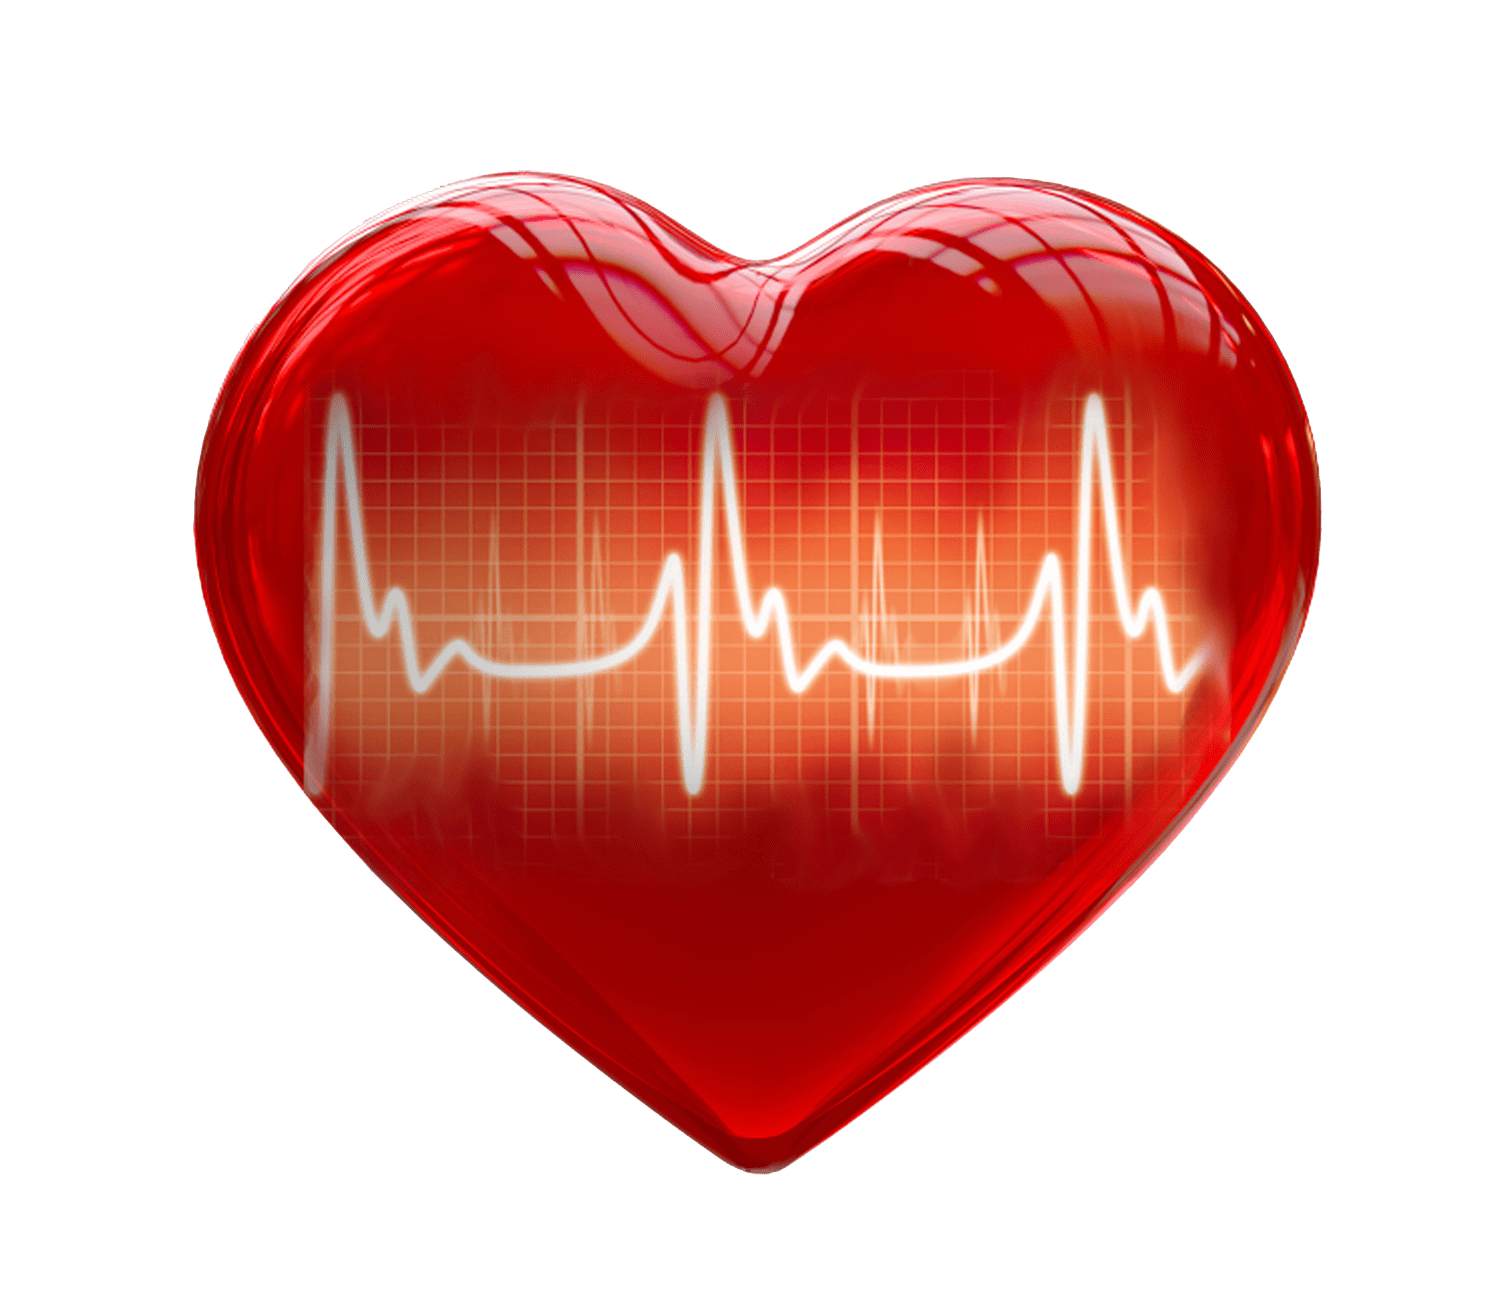 Stress heart rate clipart clipart freeuse download Am I Having a Heart Attack, or Am I Just Healthy? | SweetWater Health clipart freeuse download